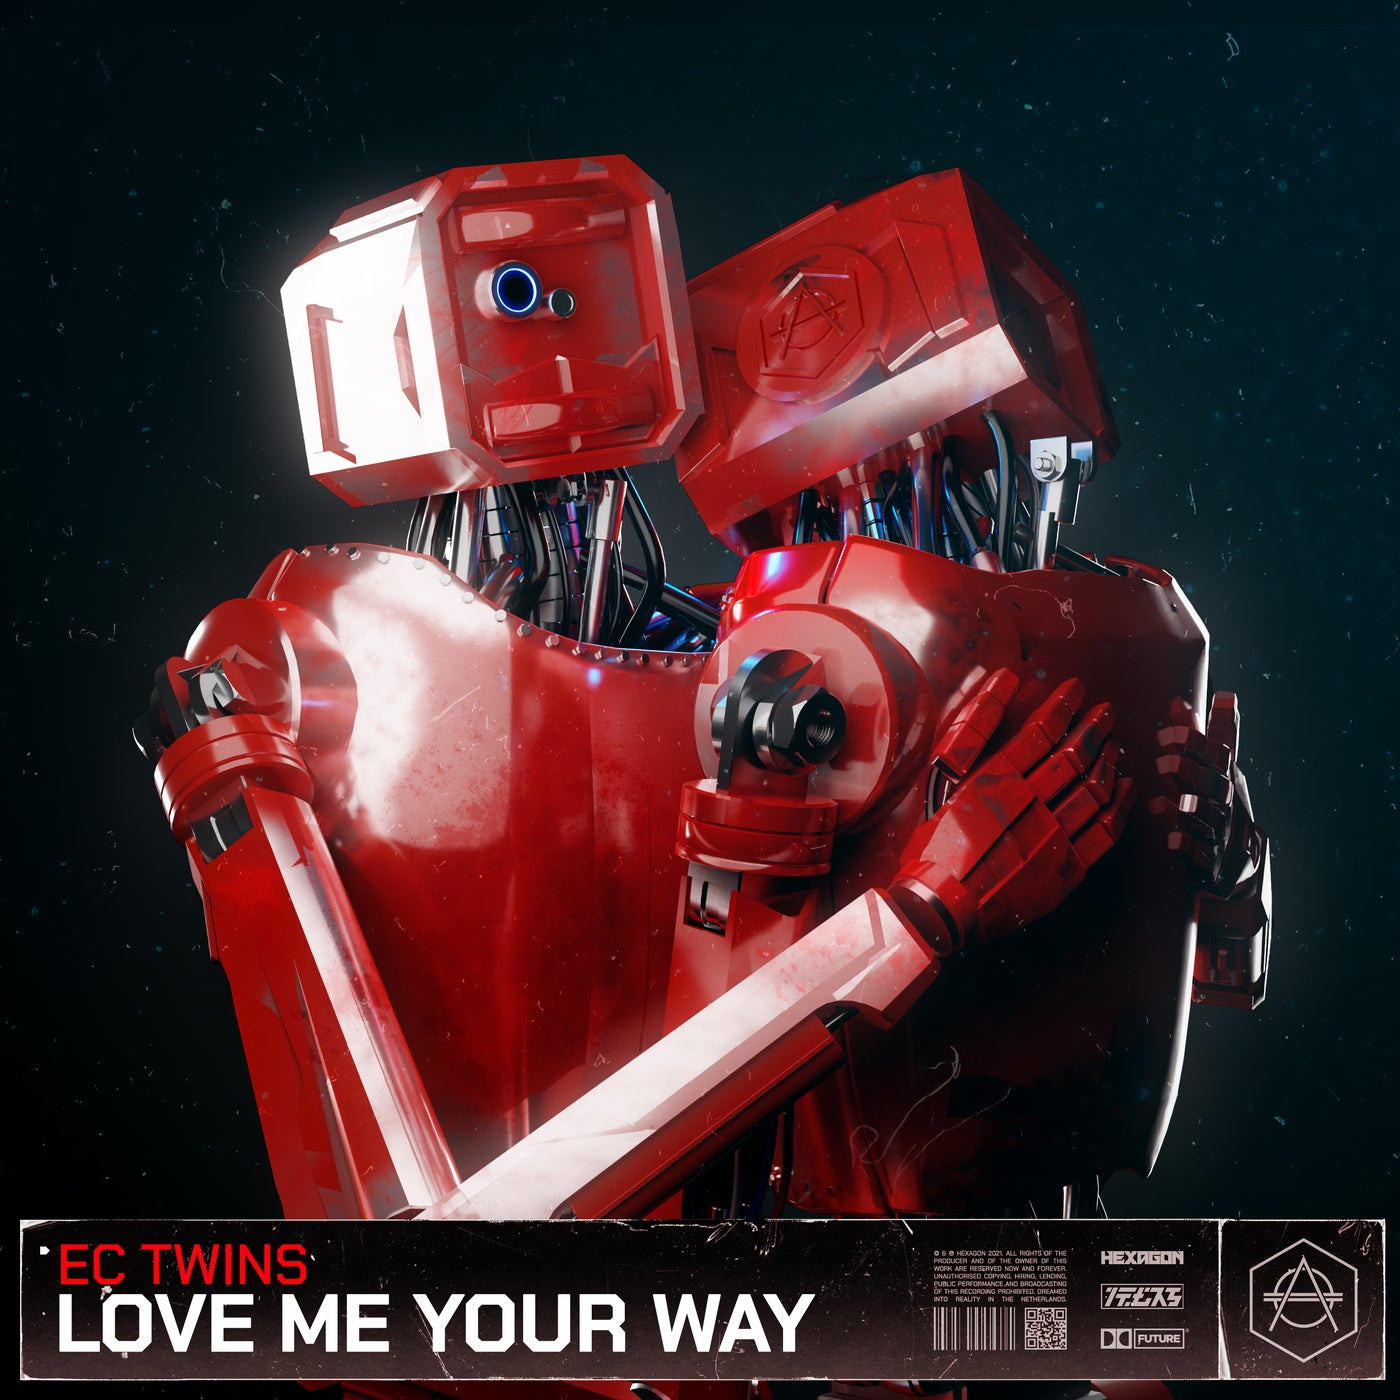 Love Me Your Way (Extended Mix)